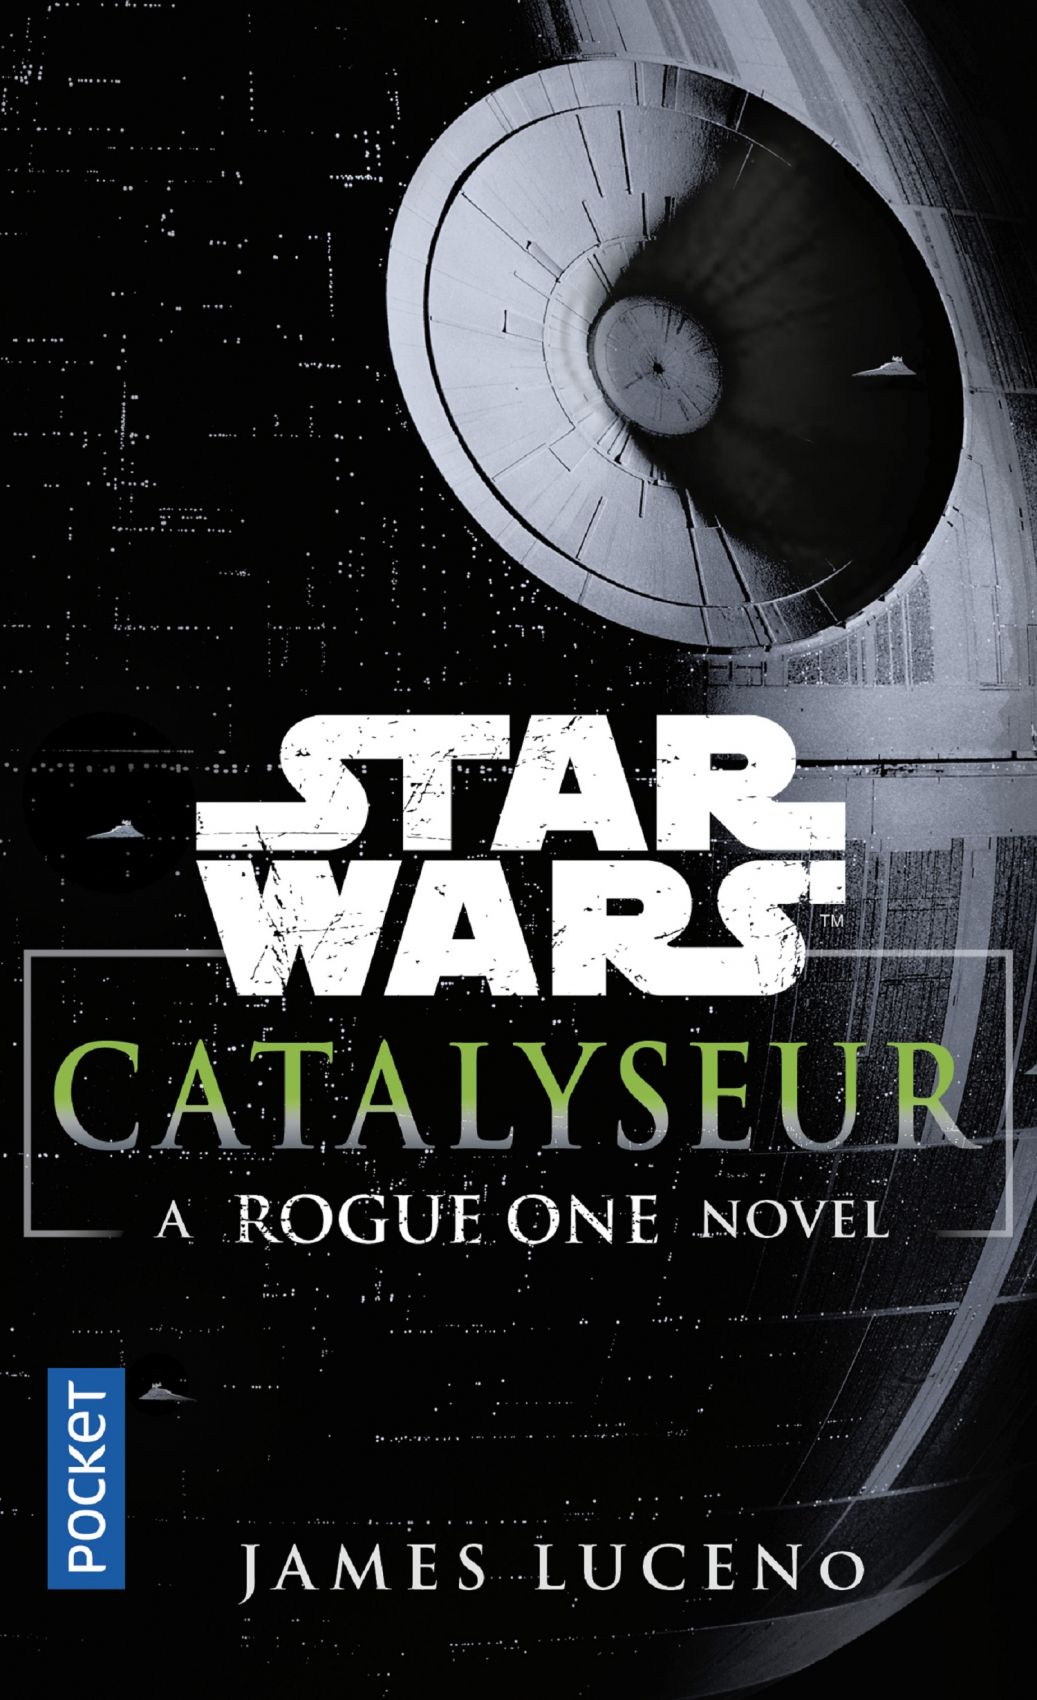 Pocket Catalyseur Rogue One